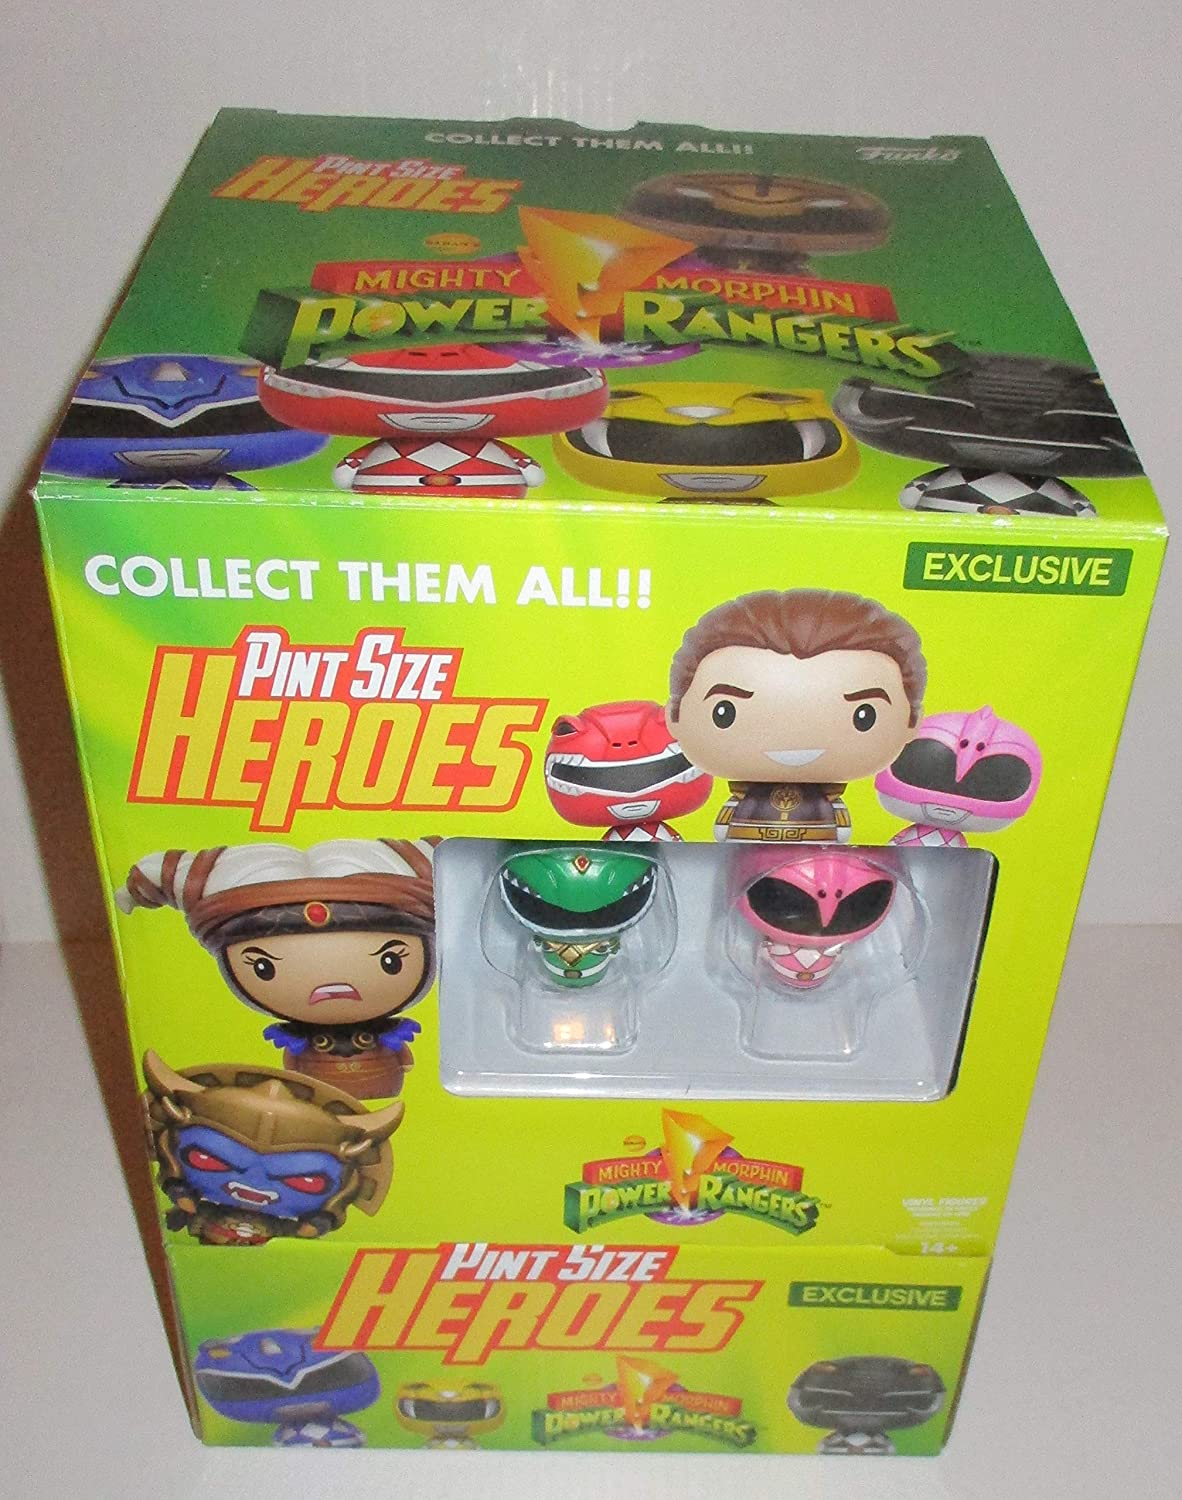 24 x Funko 12340 Pint Sized Heroes  Mighty Morphin Power Rangers Figures (Full CDU of 24 Individual Blind Bags inc Exclusive characters)